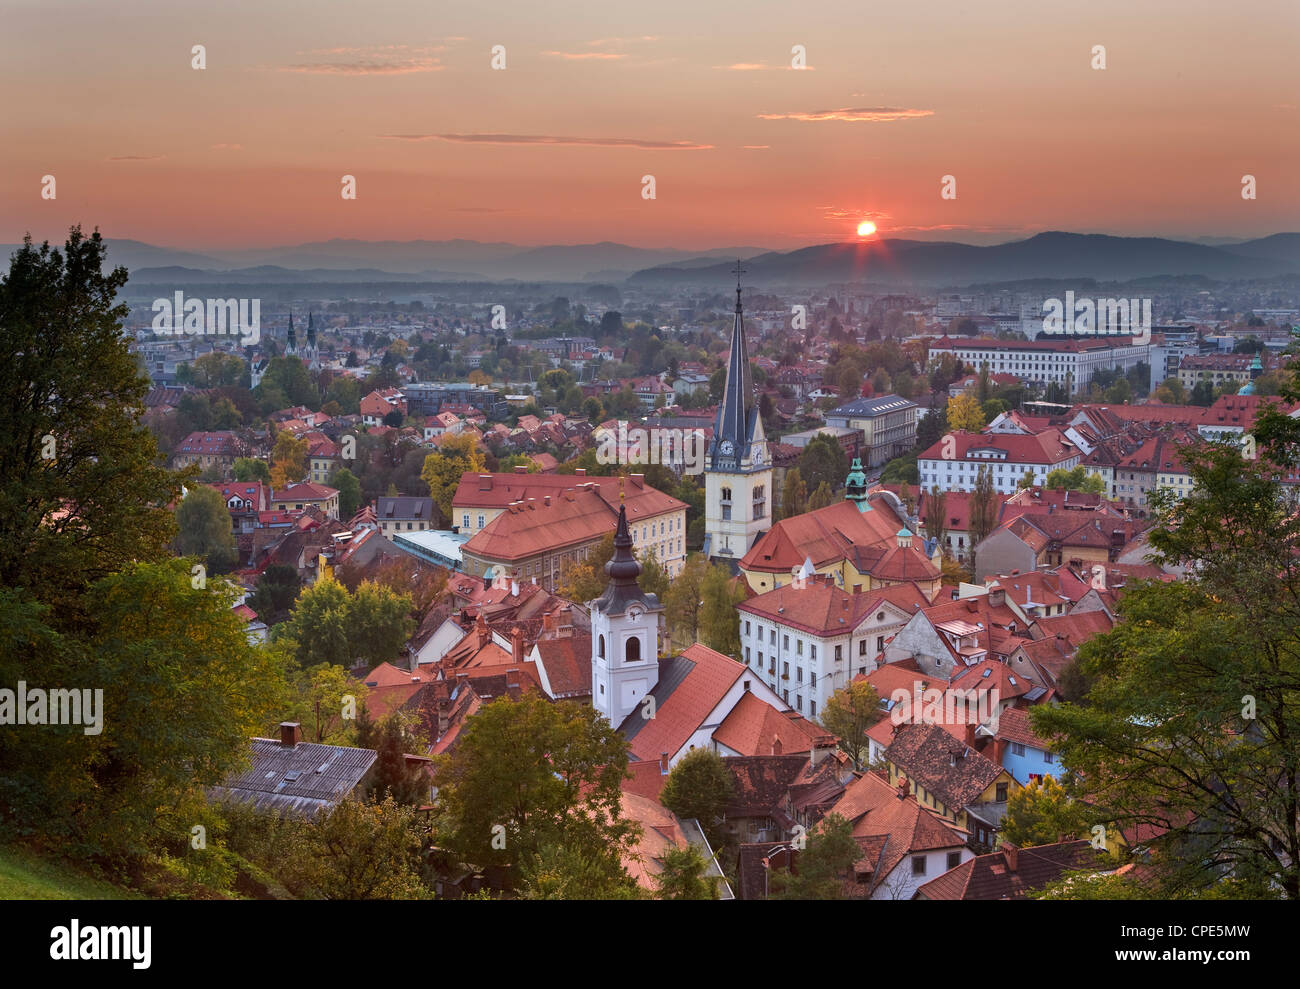 Sunset over the city of Ljubljana, Slovenia, Europe - Stock Image